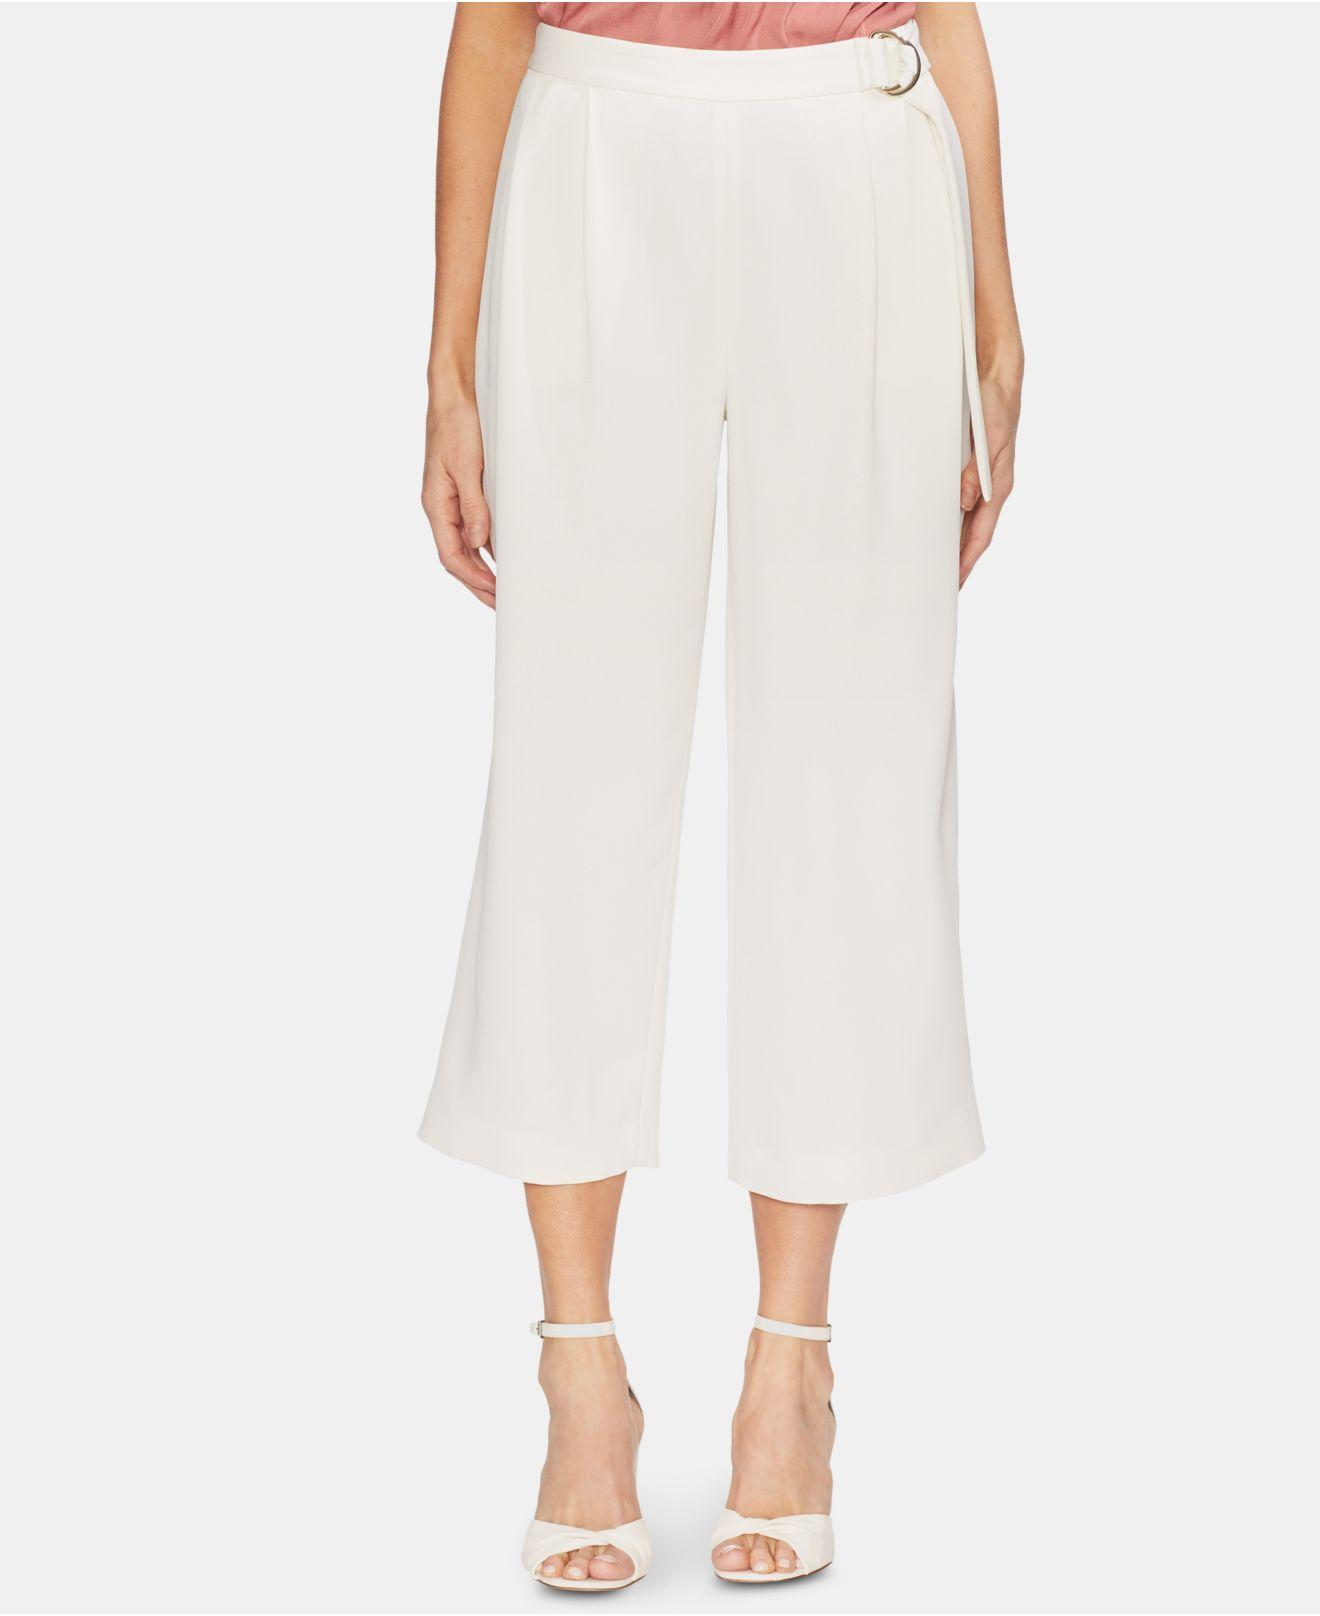 89fc4f64dc Lyst - Vince Camuto Cropped Wide-leg Pants in White